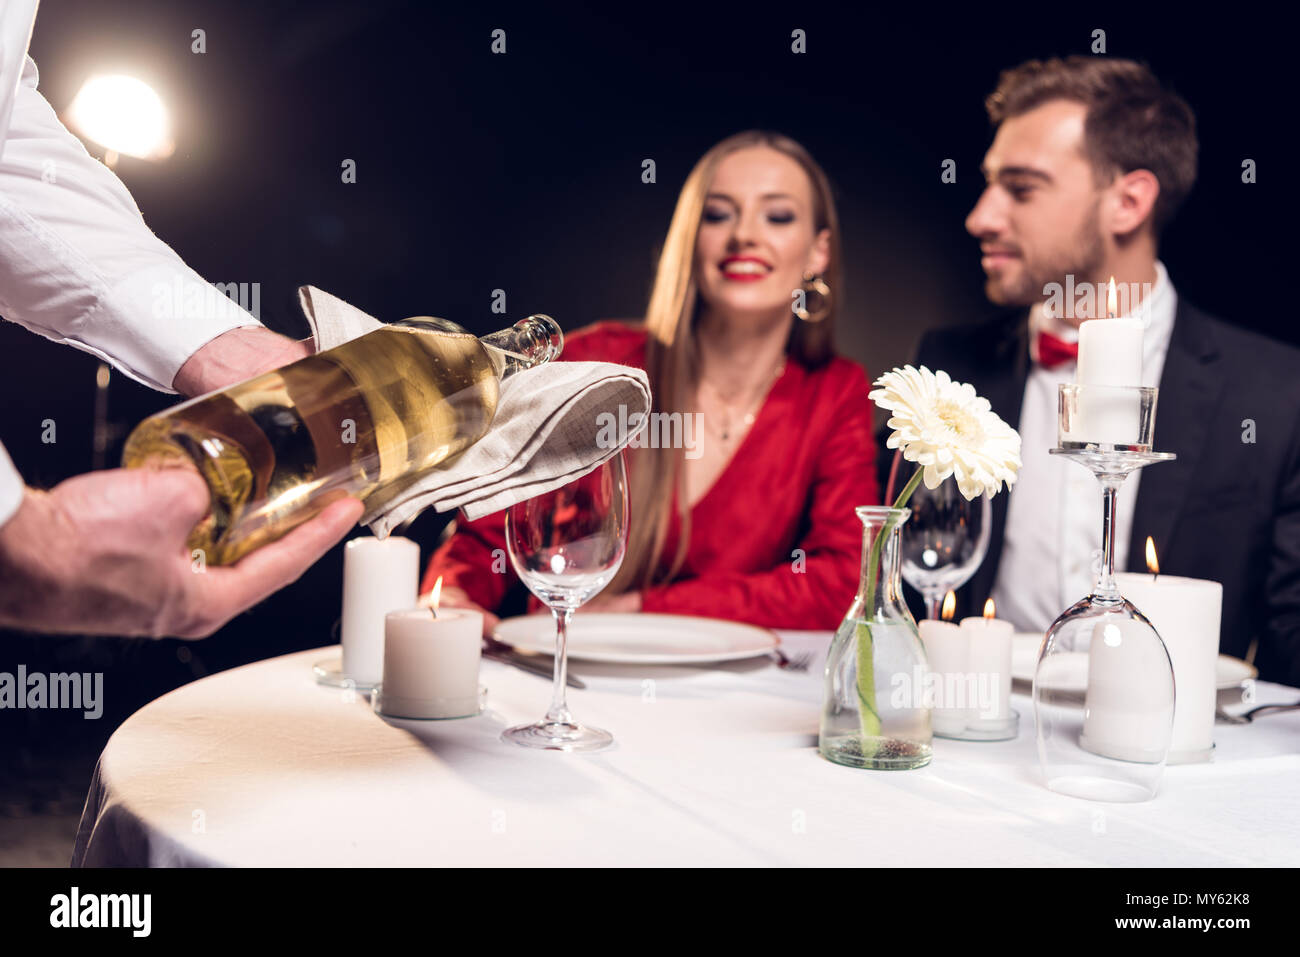 waiter pouring wine while couple having romantic date in restaurant on valentines day - Stock Image